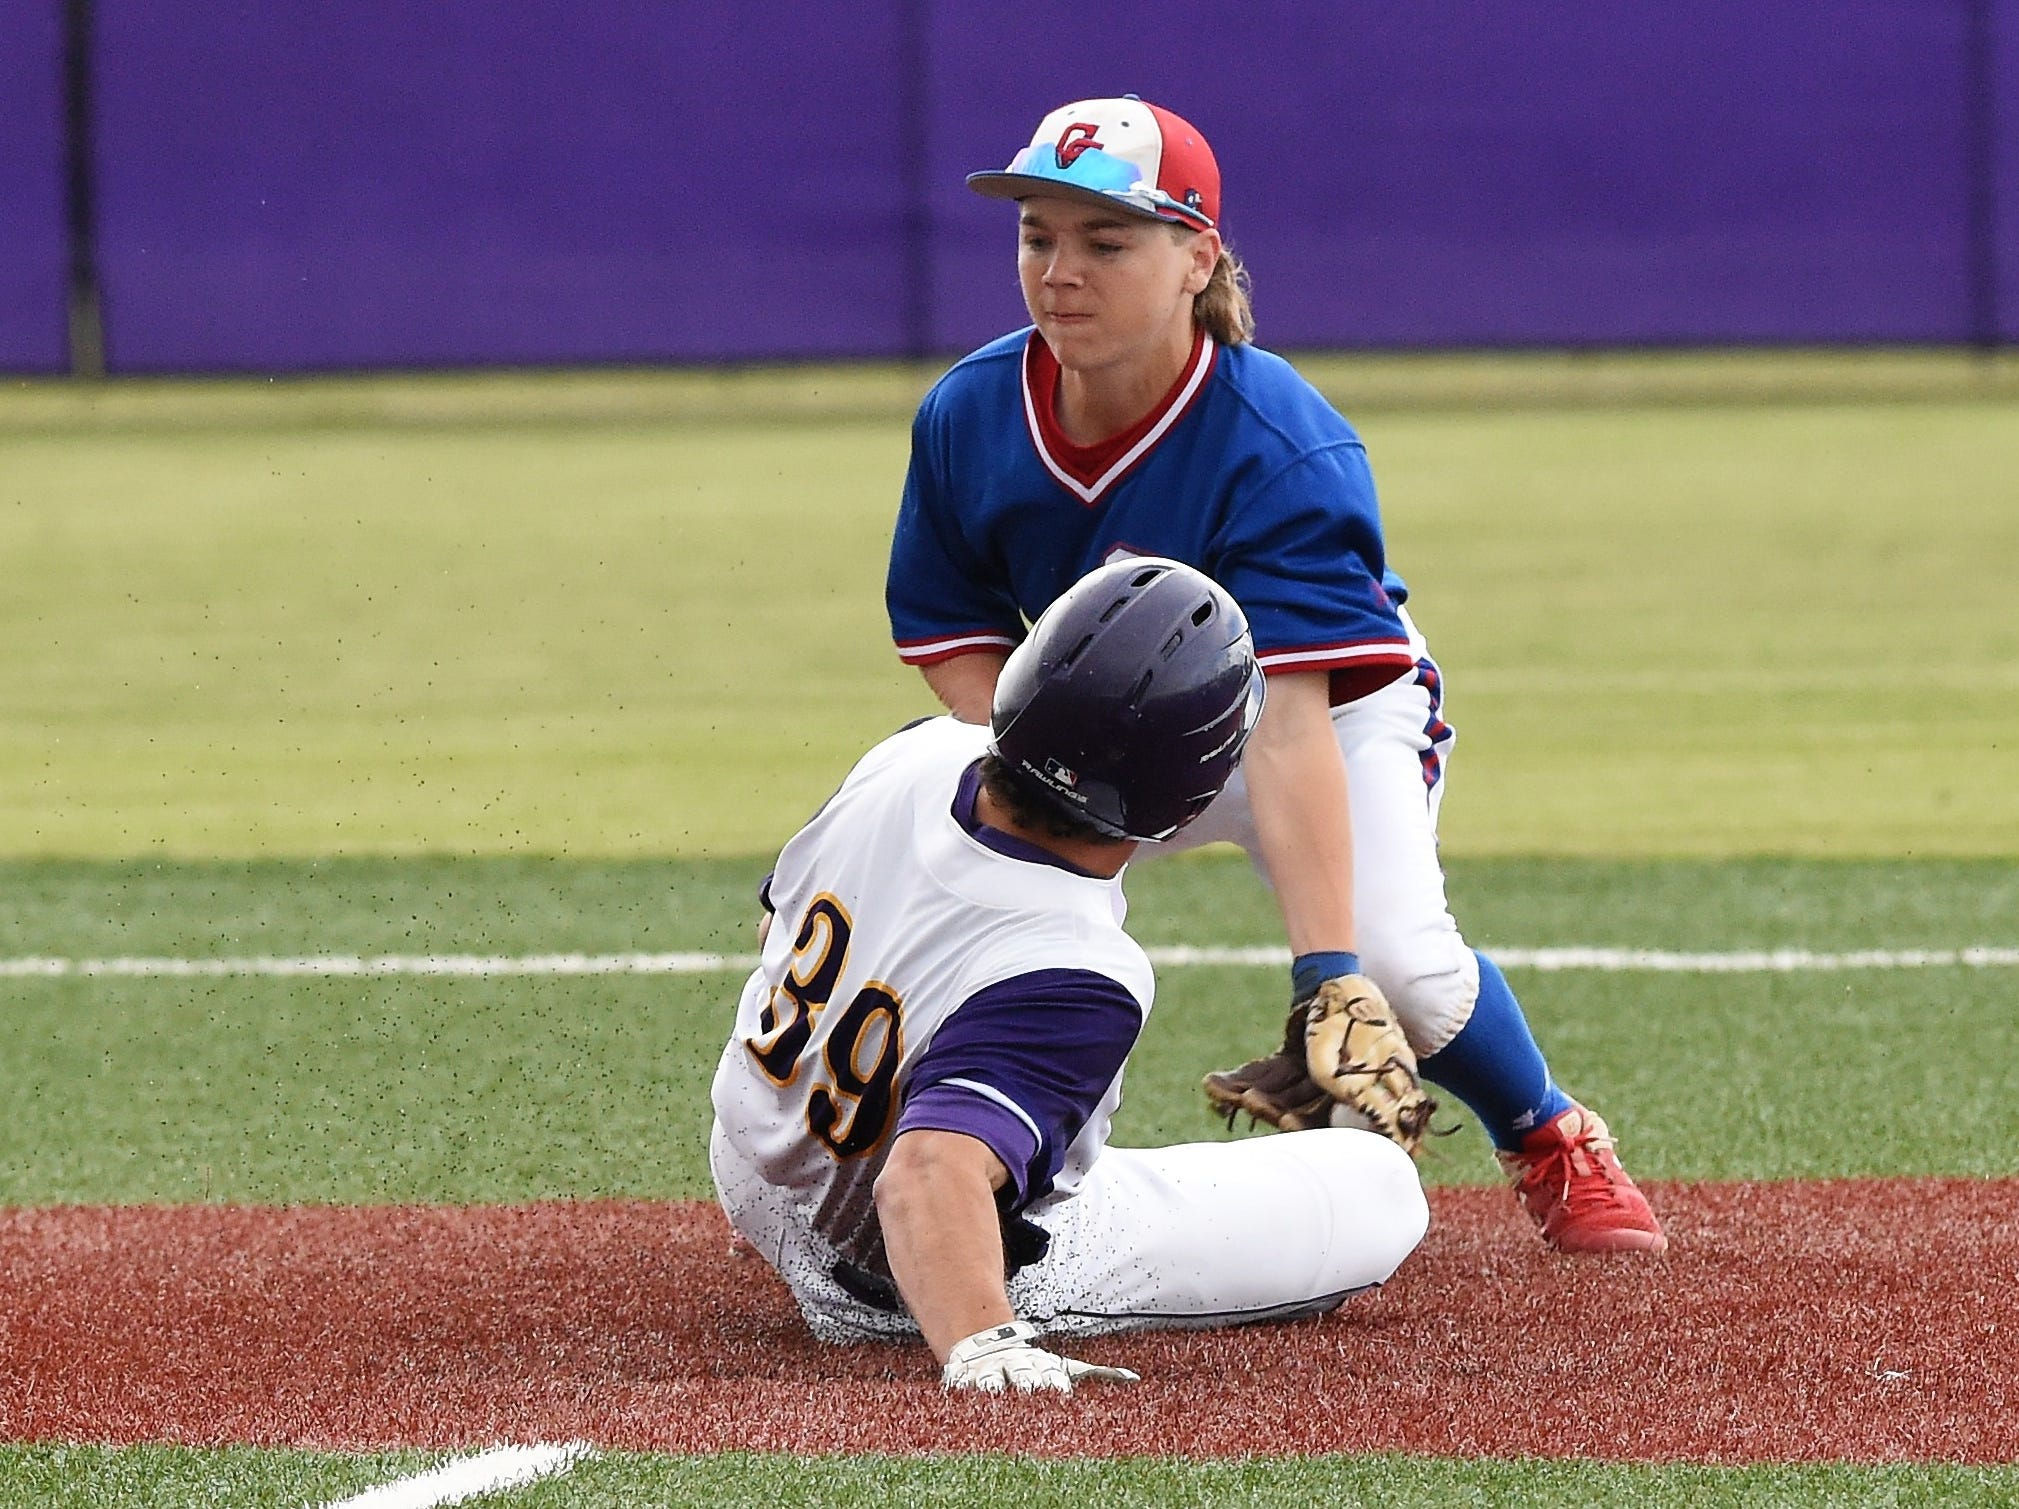 Cooper second baseman Brody Stanford (4) puts the tag on Wylie's Jaxon Hansen (39) at Bulldog Field on Friday, April 12, 2019. Wylie won 4-3.